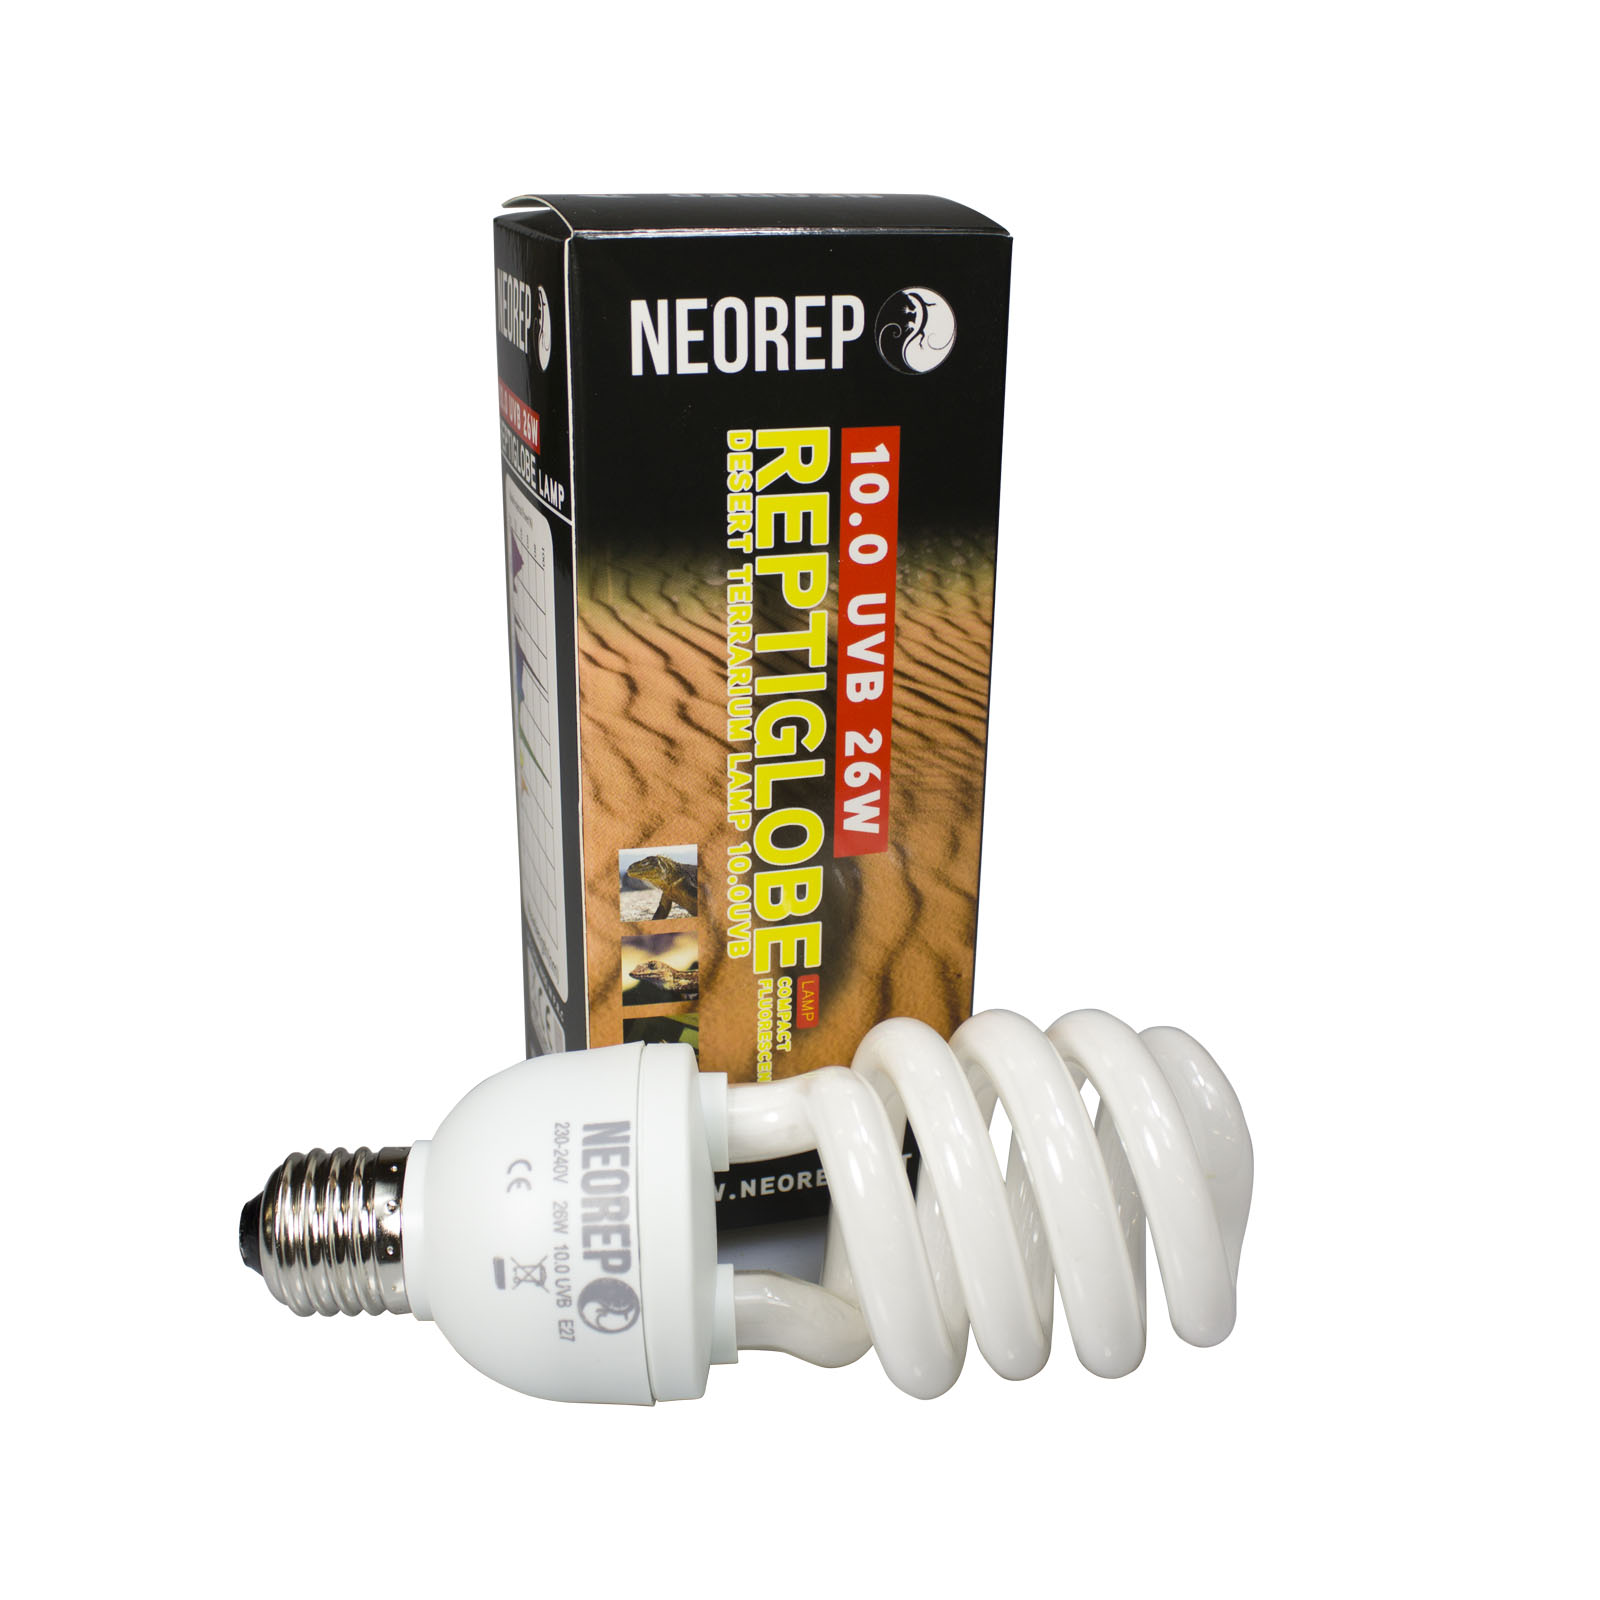 Compact Fluorescent Lamp Uvb 10 0 26w Neo Reptile Products